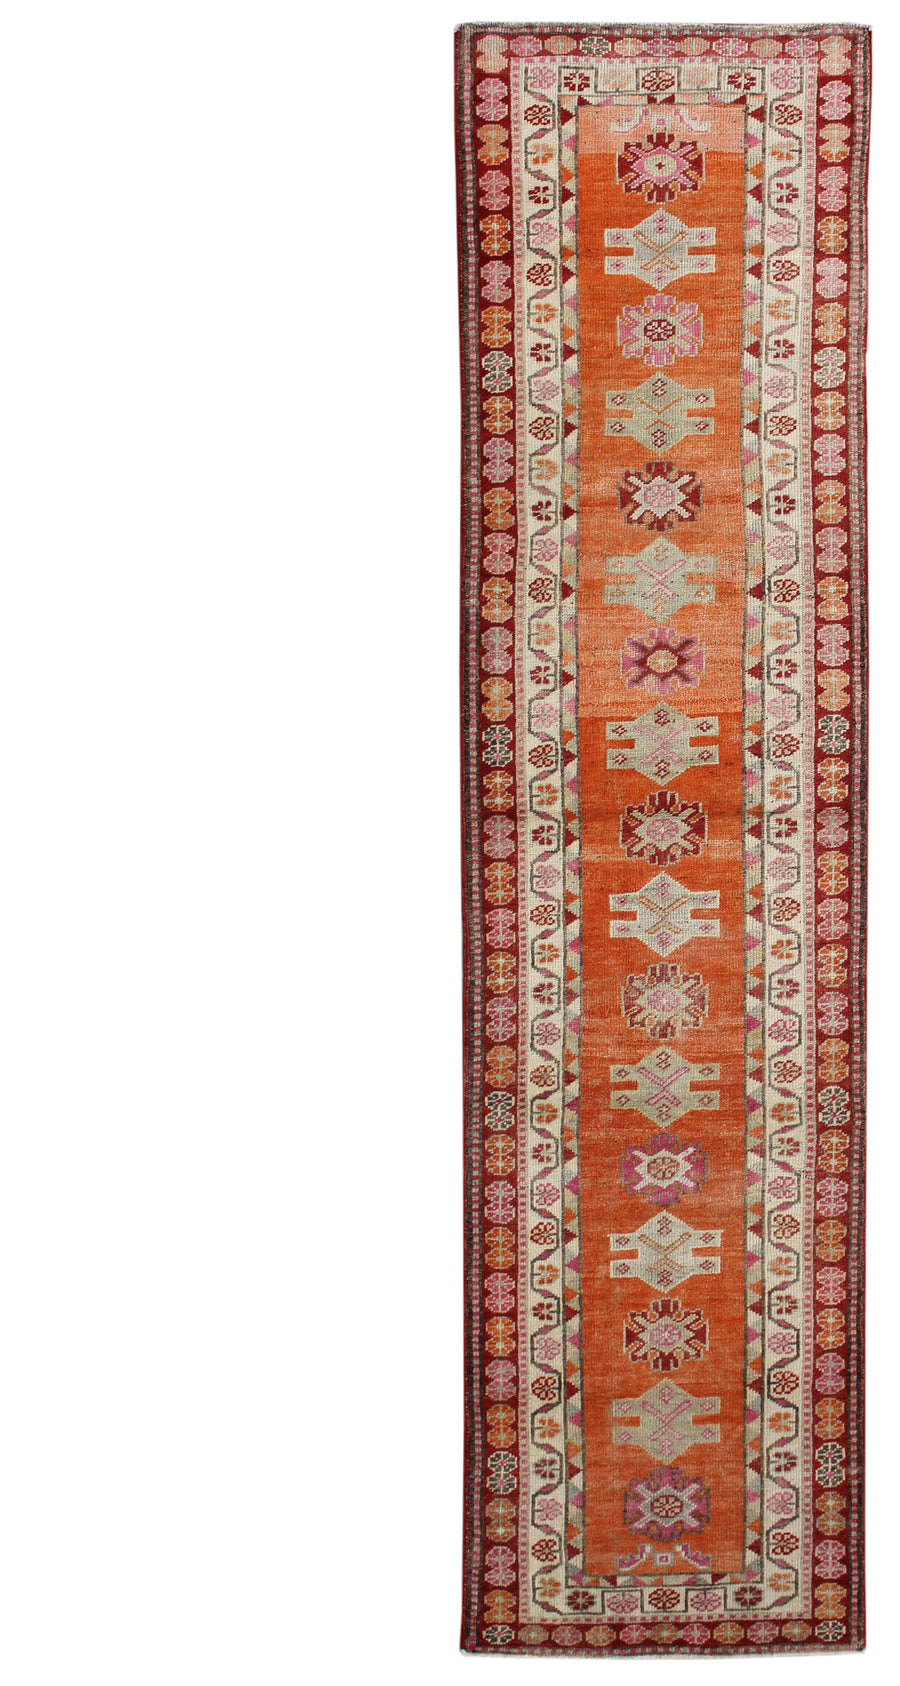 KURDISH HANDKNOTTED RUG, J54116